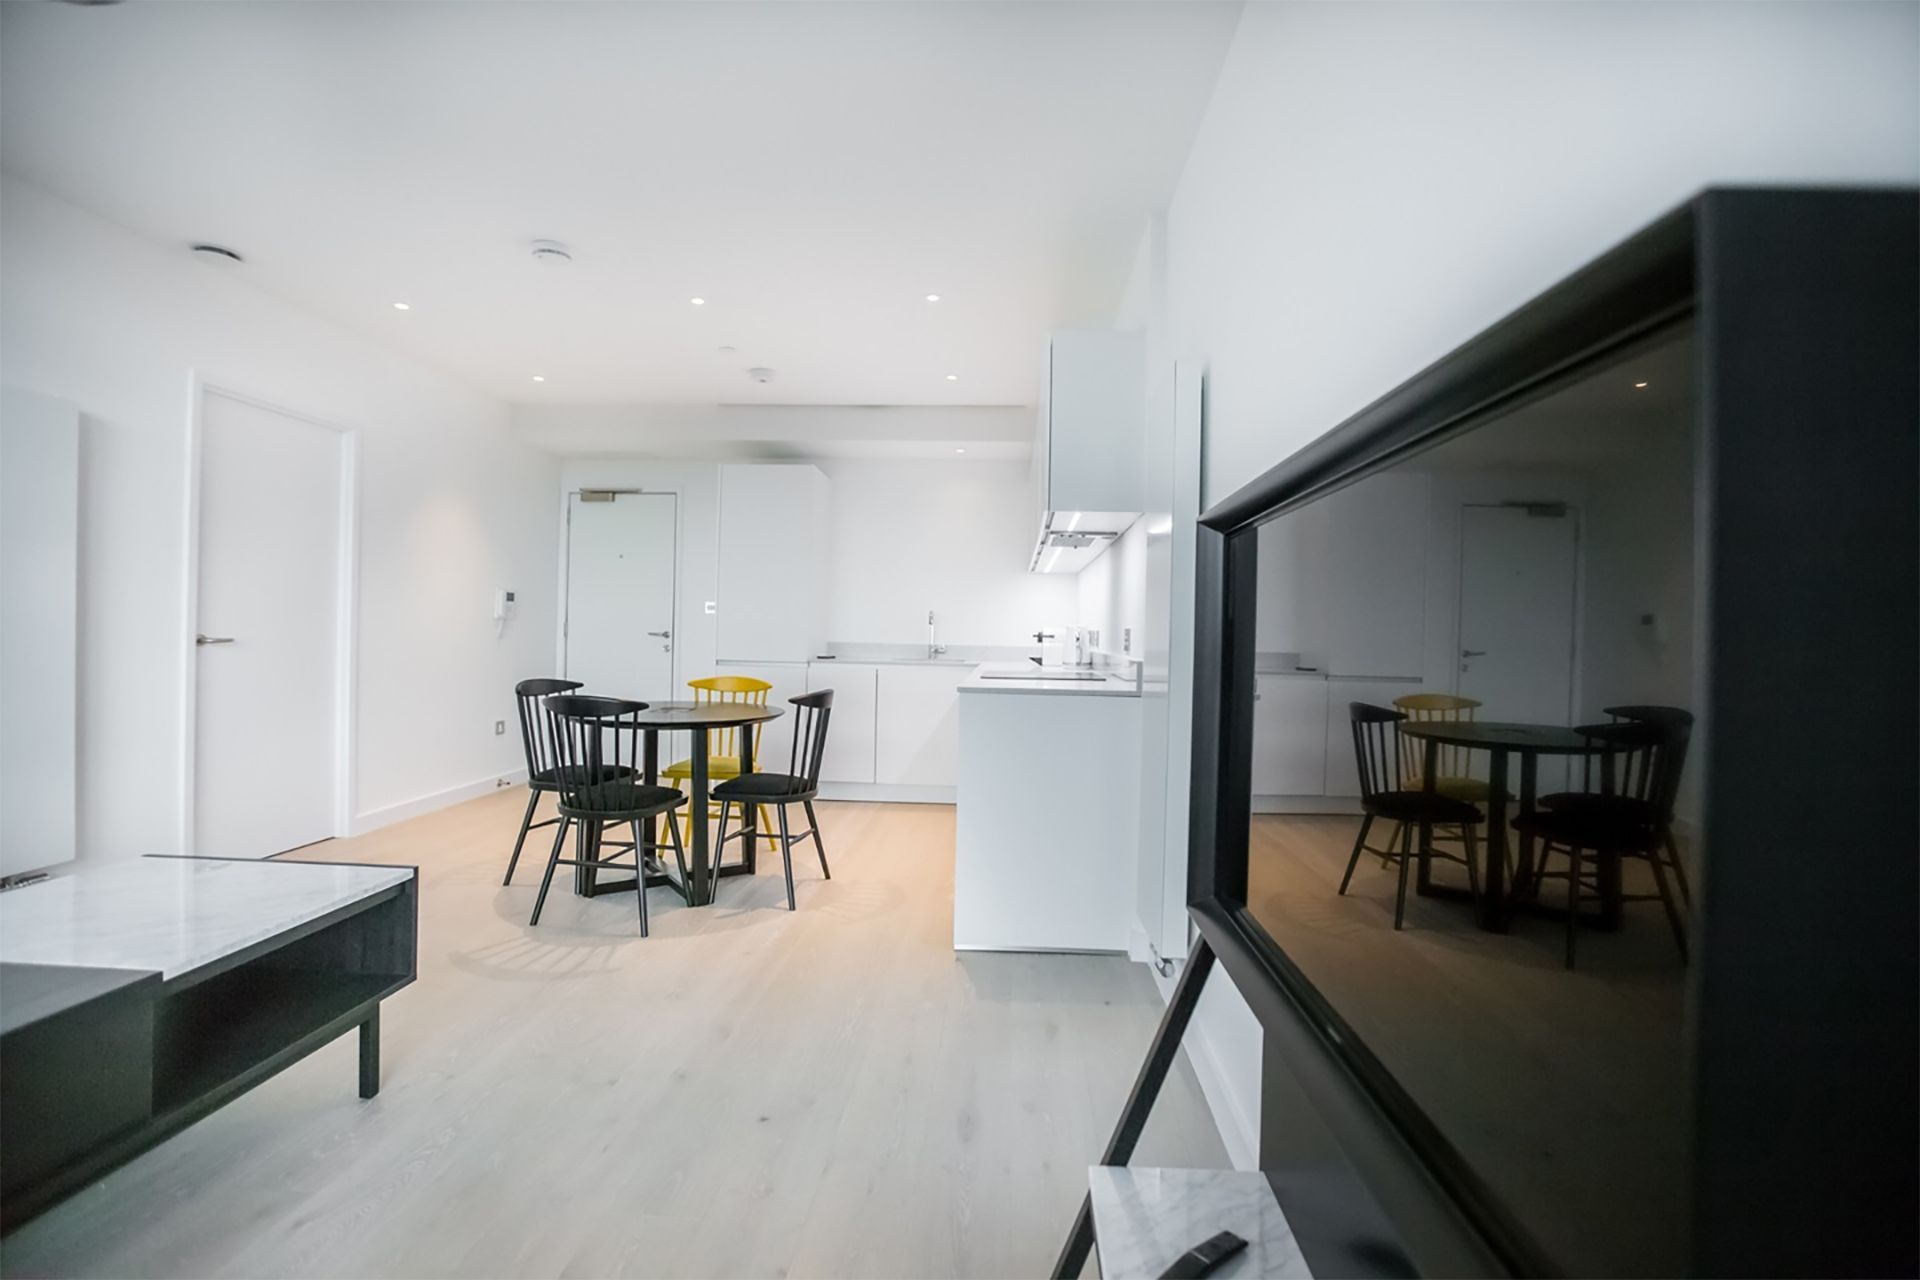 1 Bedroom apartment to rent in London HIL-HH-0705